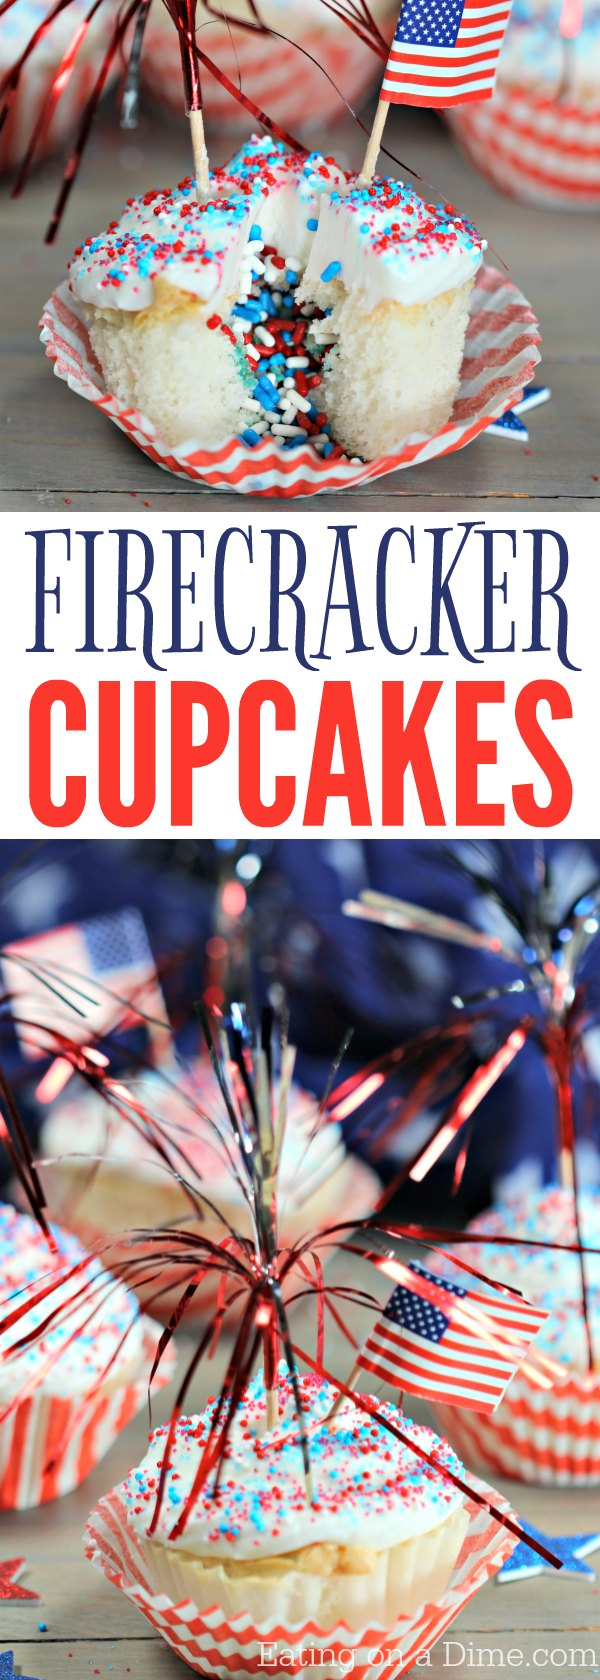 These quick and Easy 4th of July Cupcakes are so fun! These firecracker cupcakes have a surprise of sprinkles in the middle! They're perfect for parties!ake this 4th of July dessert today!